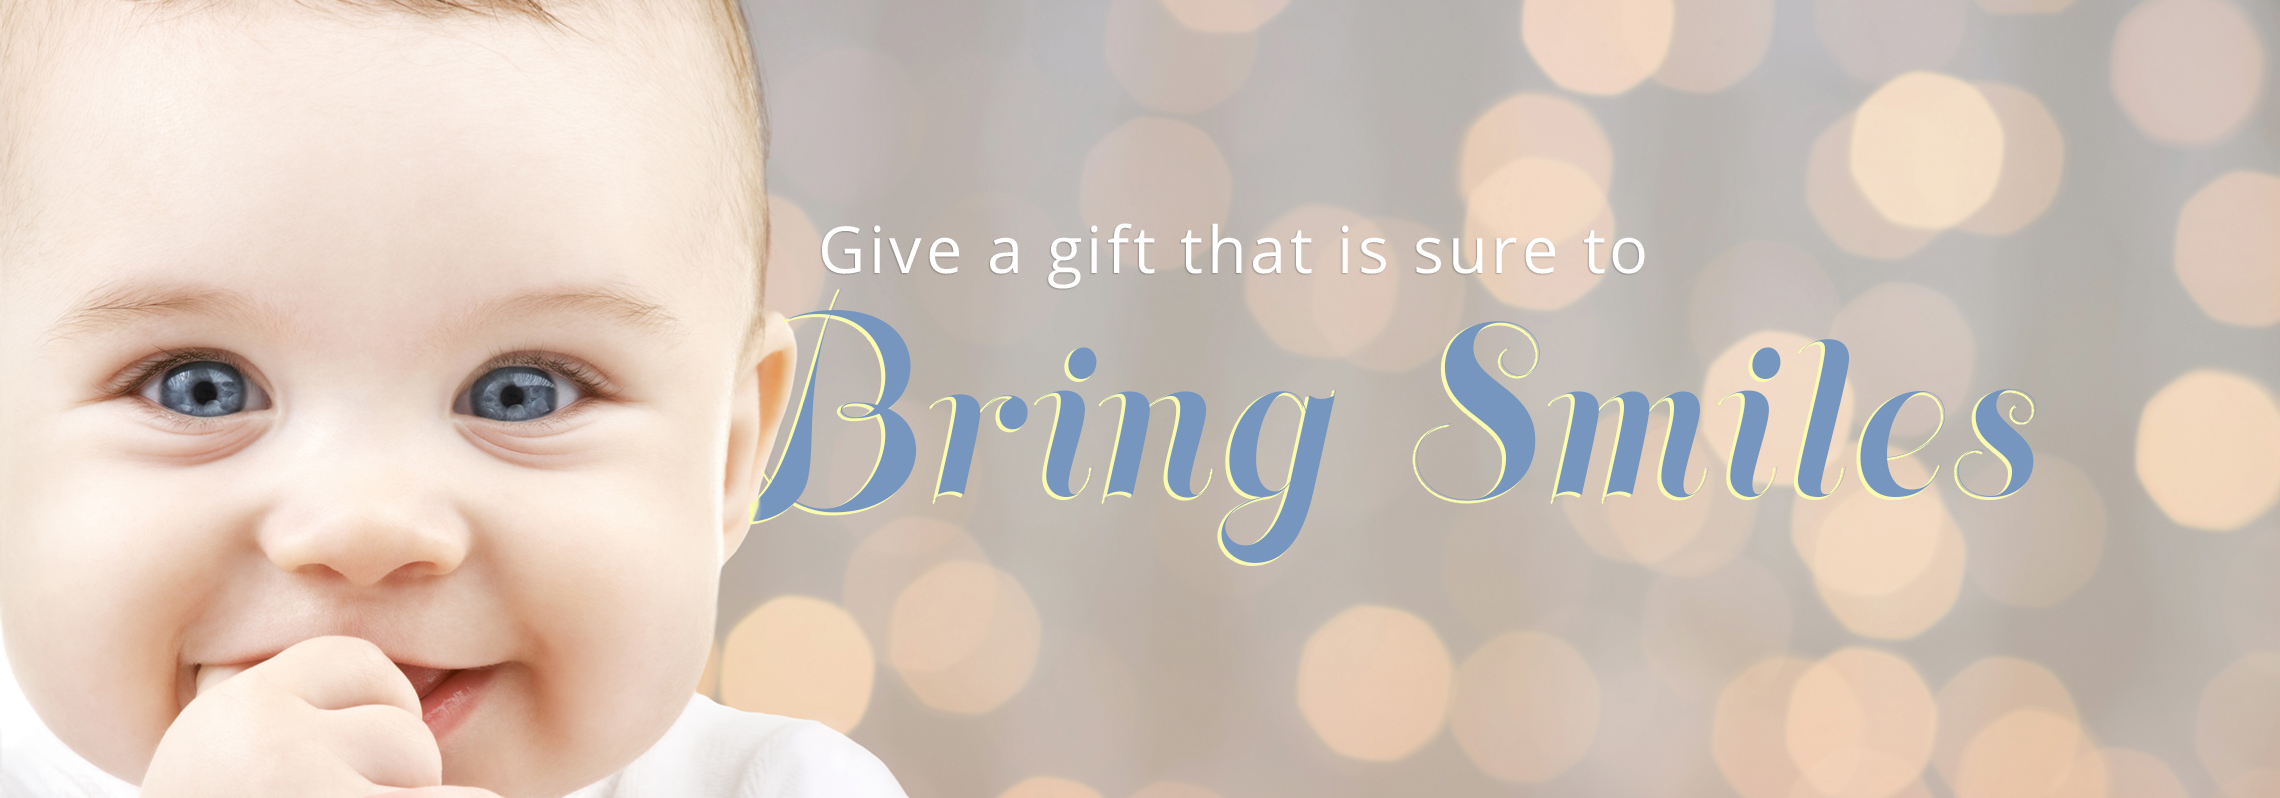 Give the gift of smiles